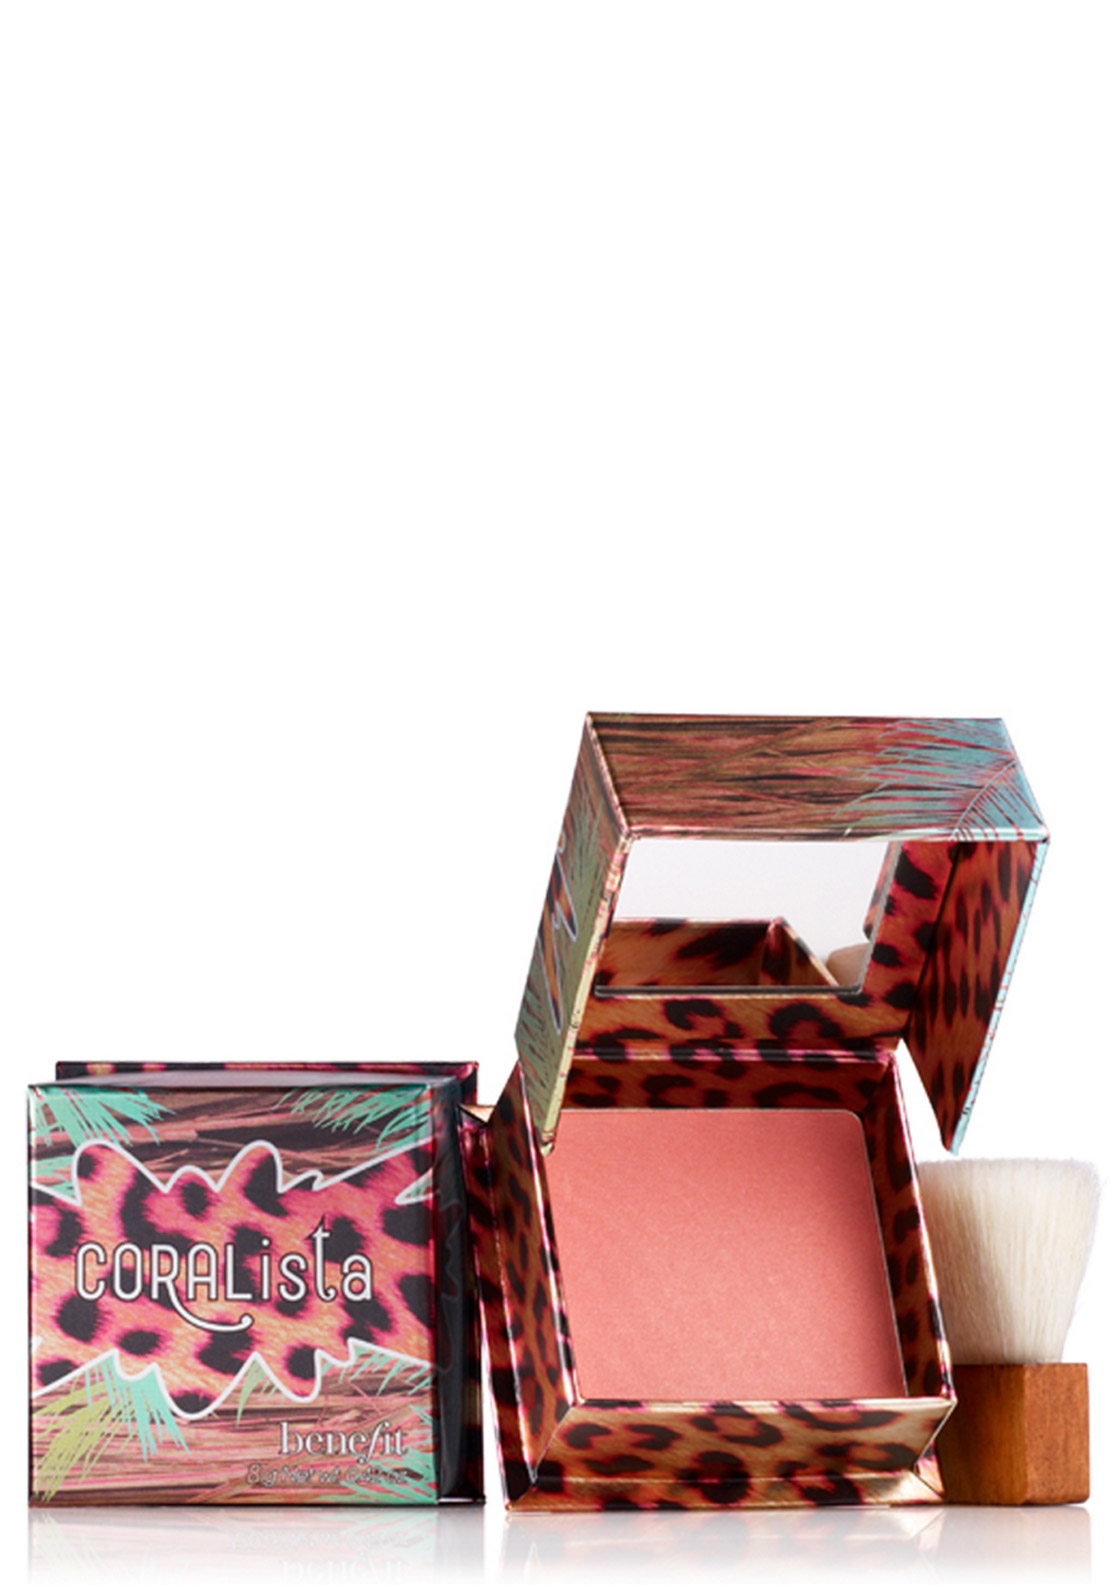 Benefit Coralista Coral Blush Face Powder